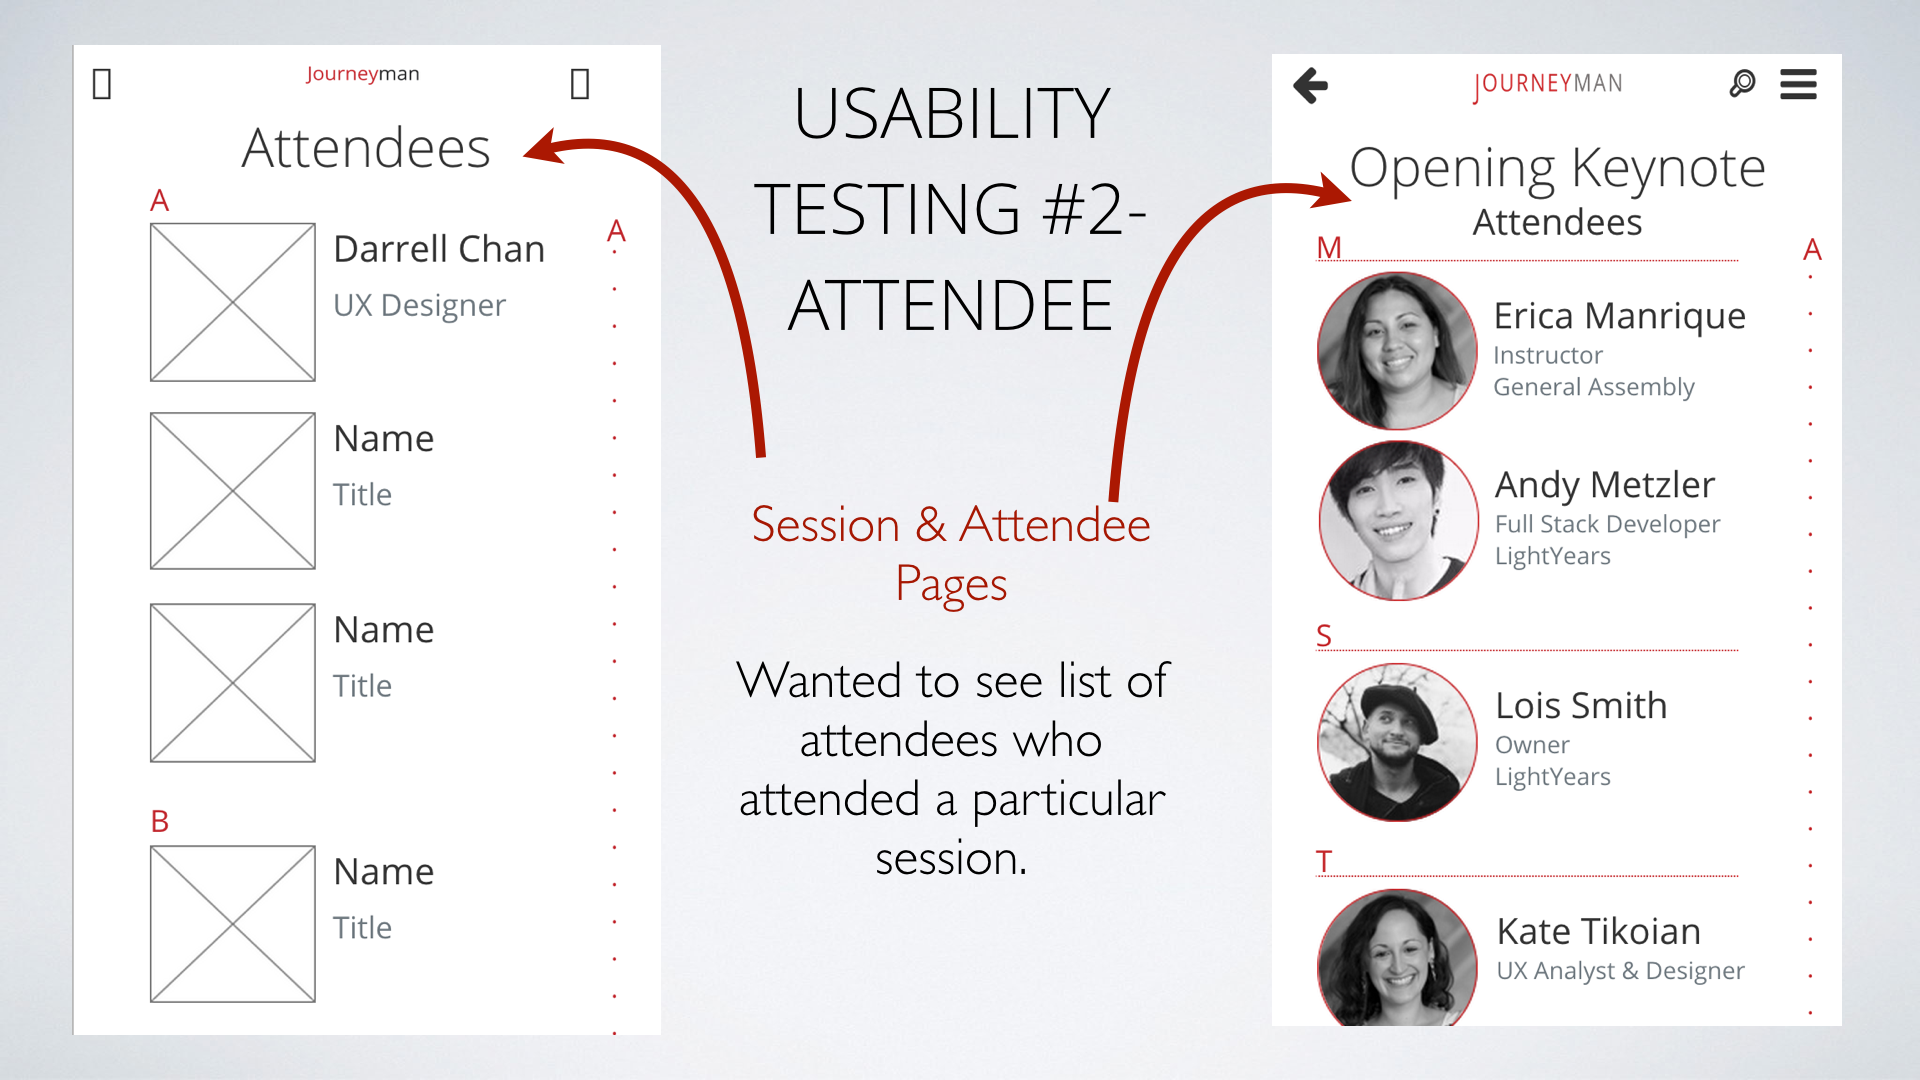 Attendee Usability Outcome #2